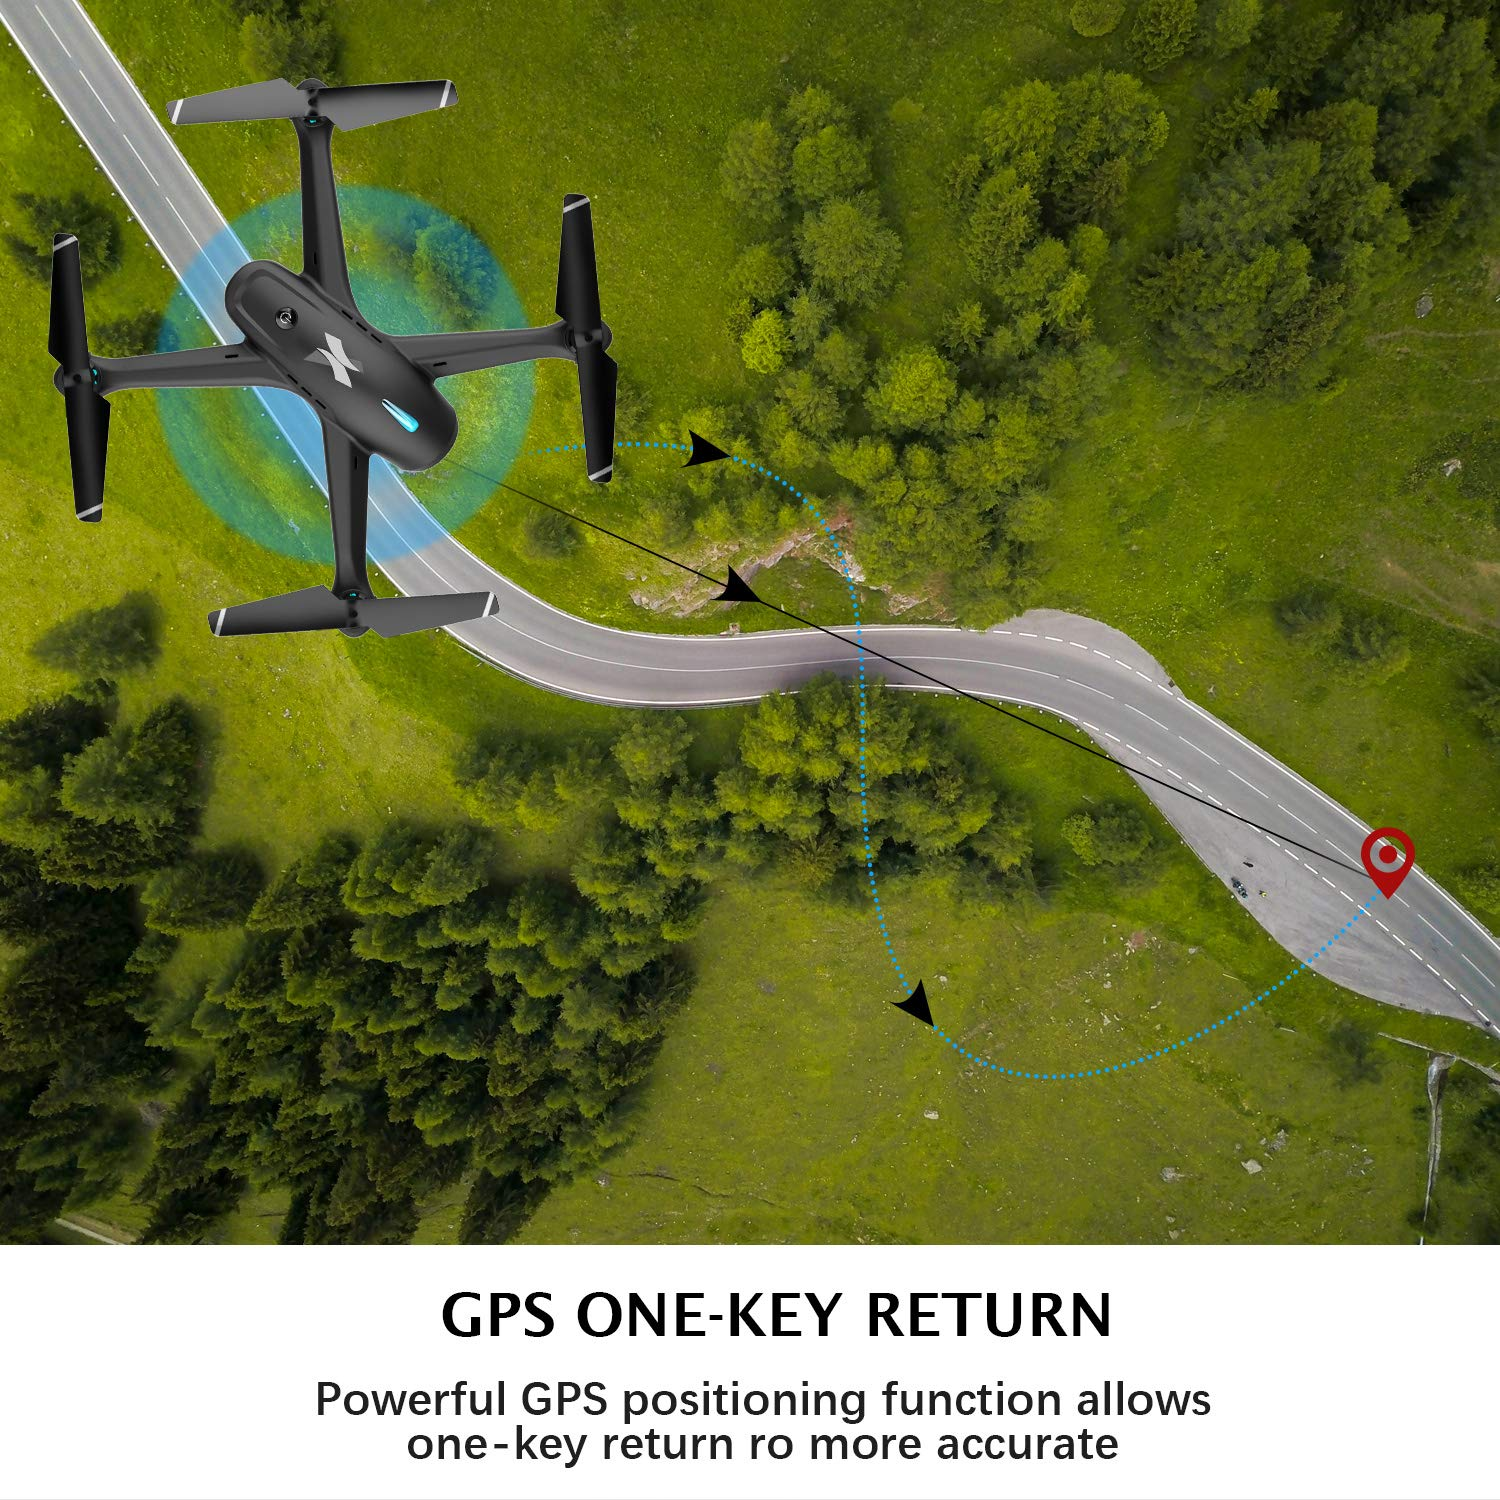 Adjustable WiFi Camera RC Quadcopter with GPS Return Home APP Control,5G WiFi Transmission,Follow Me Easy to Fly for Beginners. Drones for Adults,GPS FPV Drone with 1080p HD Camera Live Video